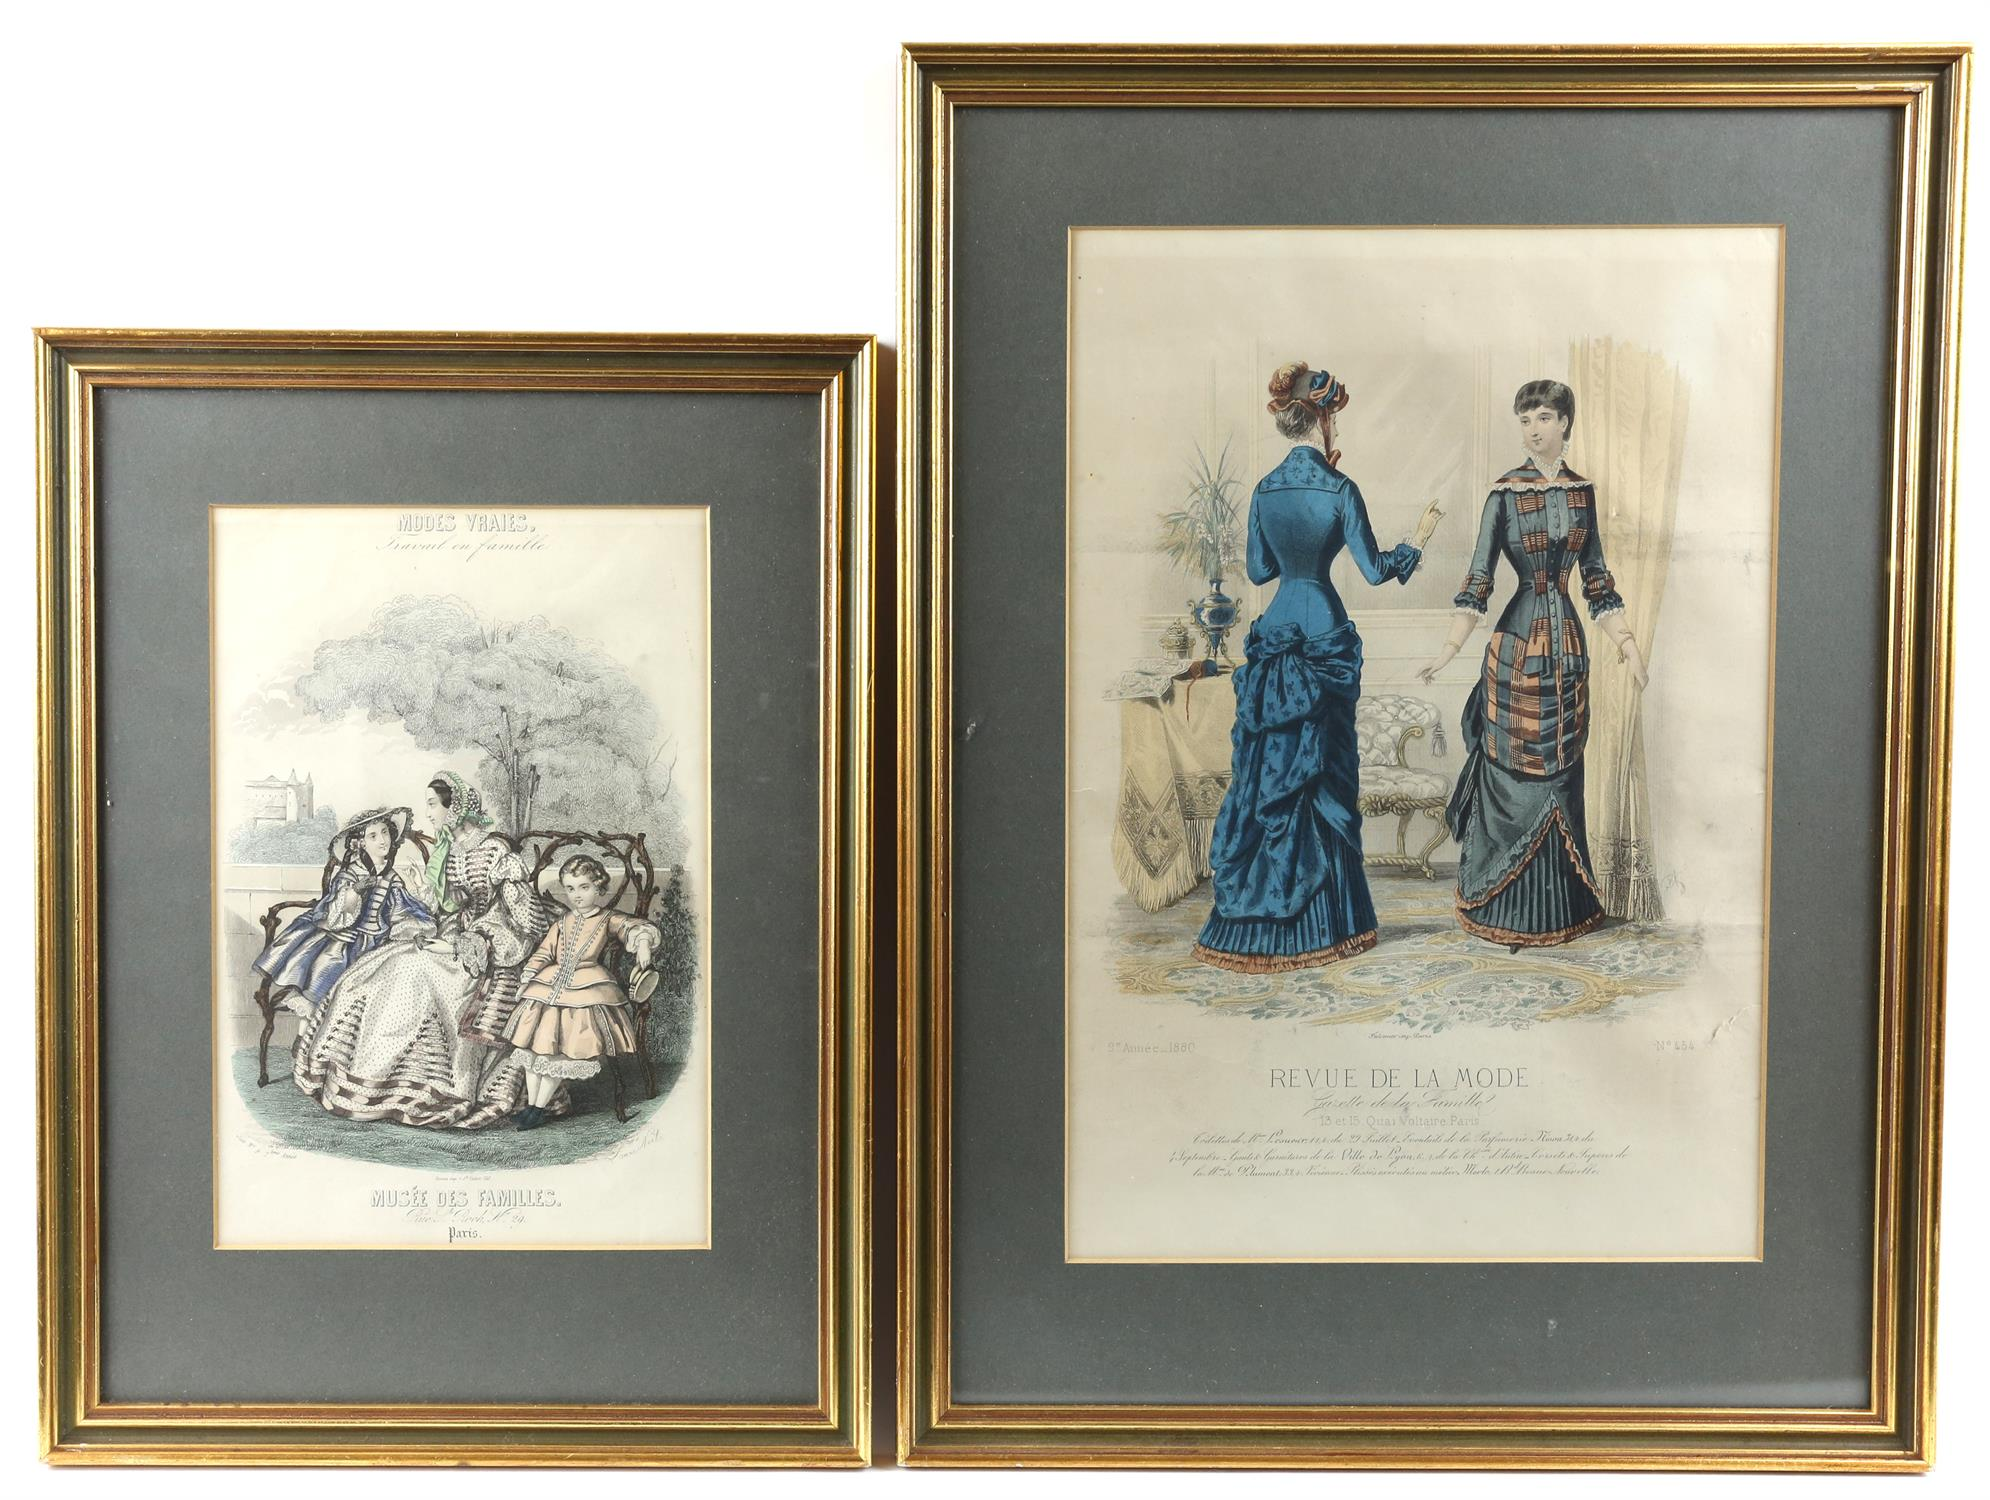 Collection of nineteenth-century French hand-coloured fashion prints, including 'Revue de la mode',